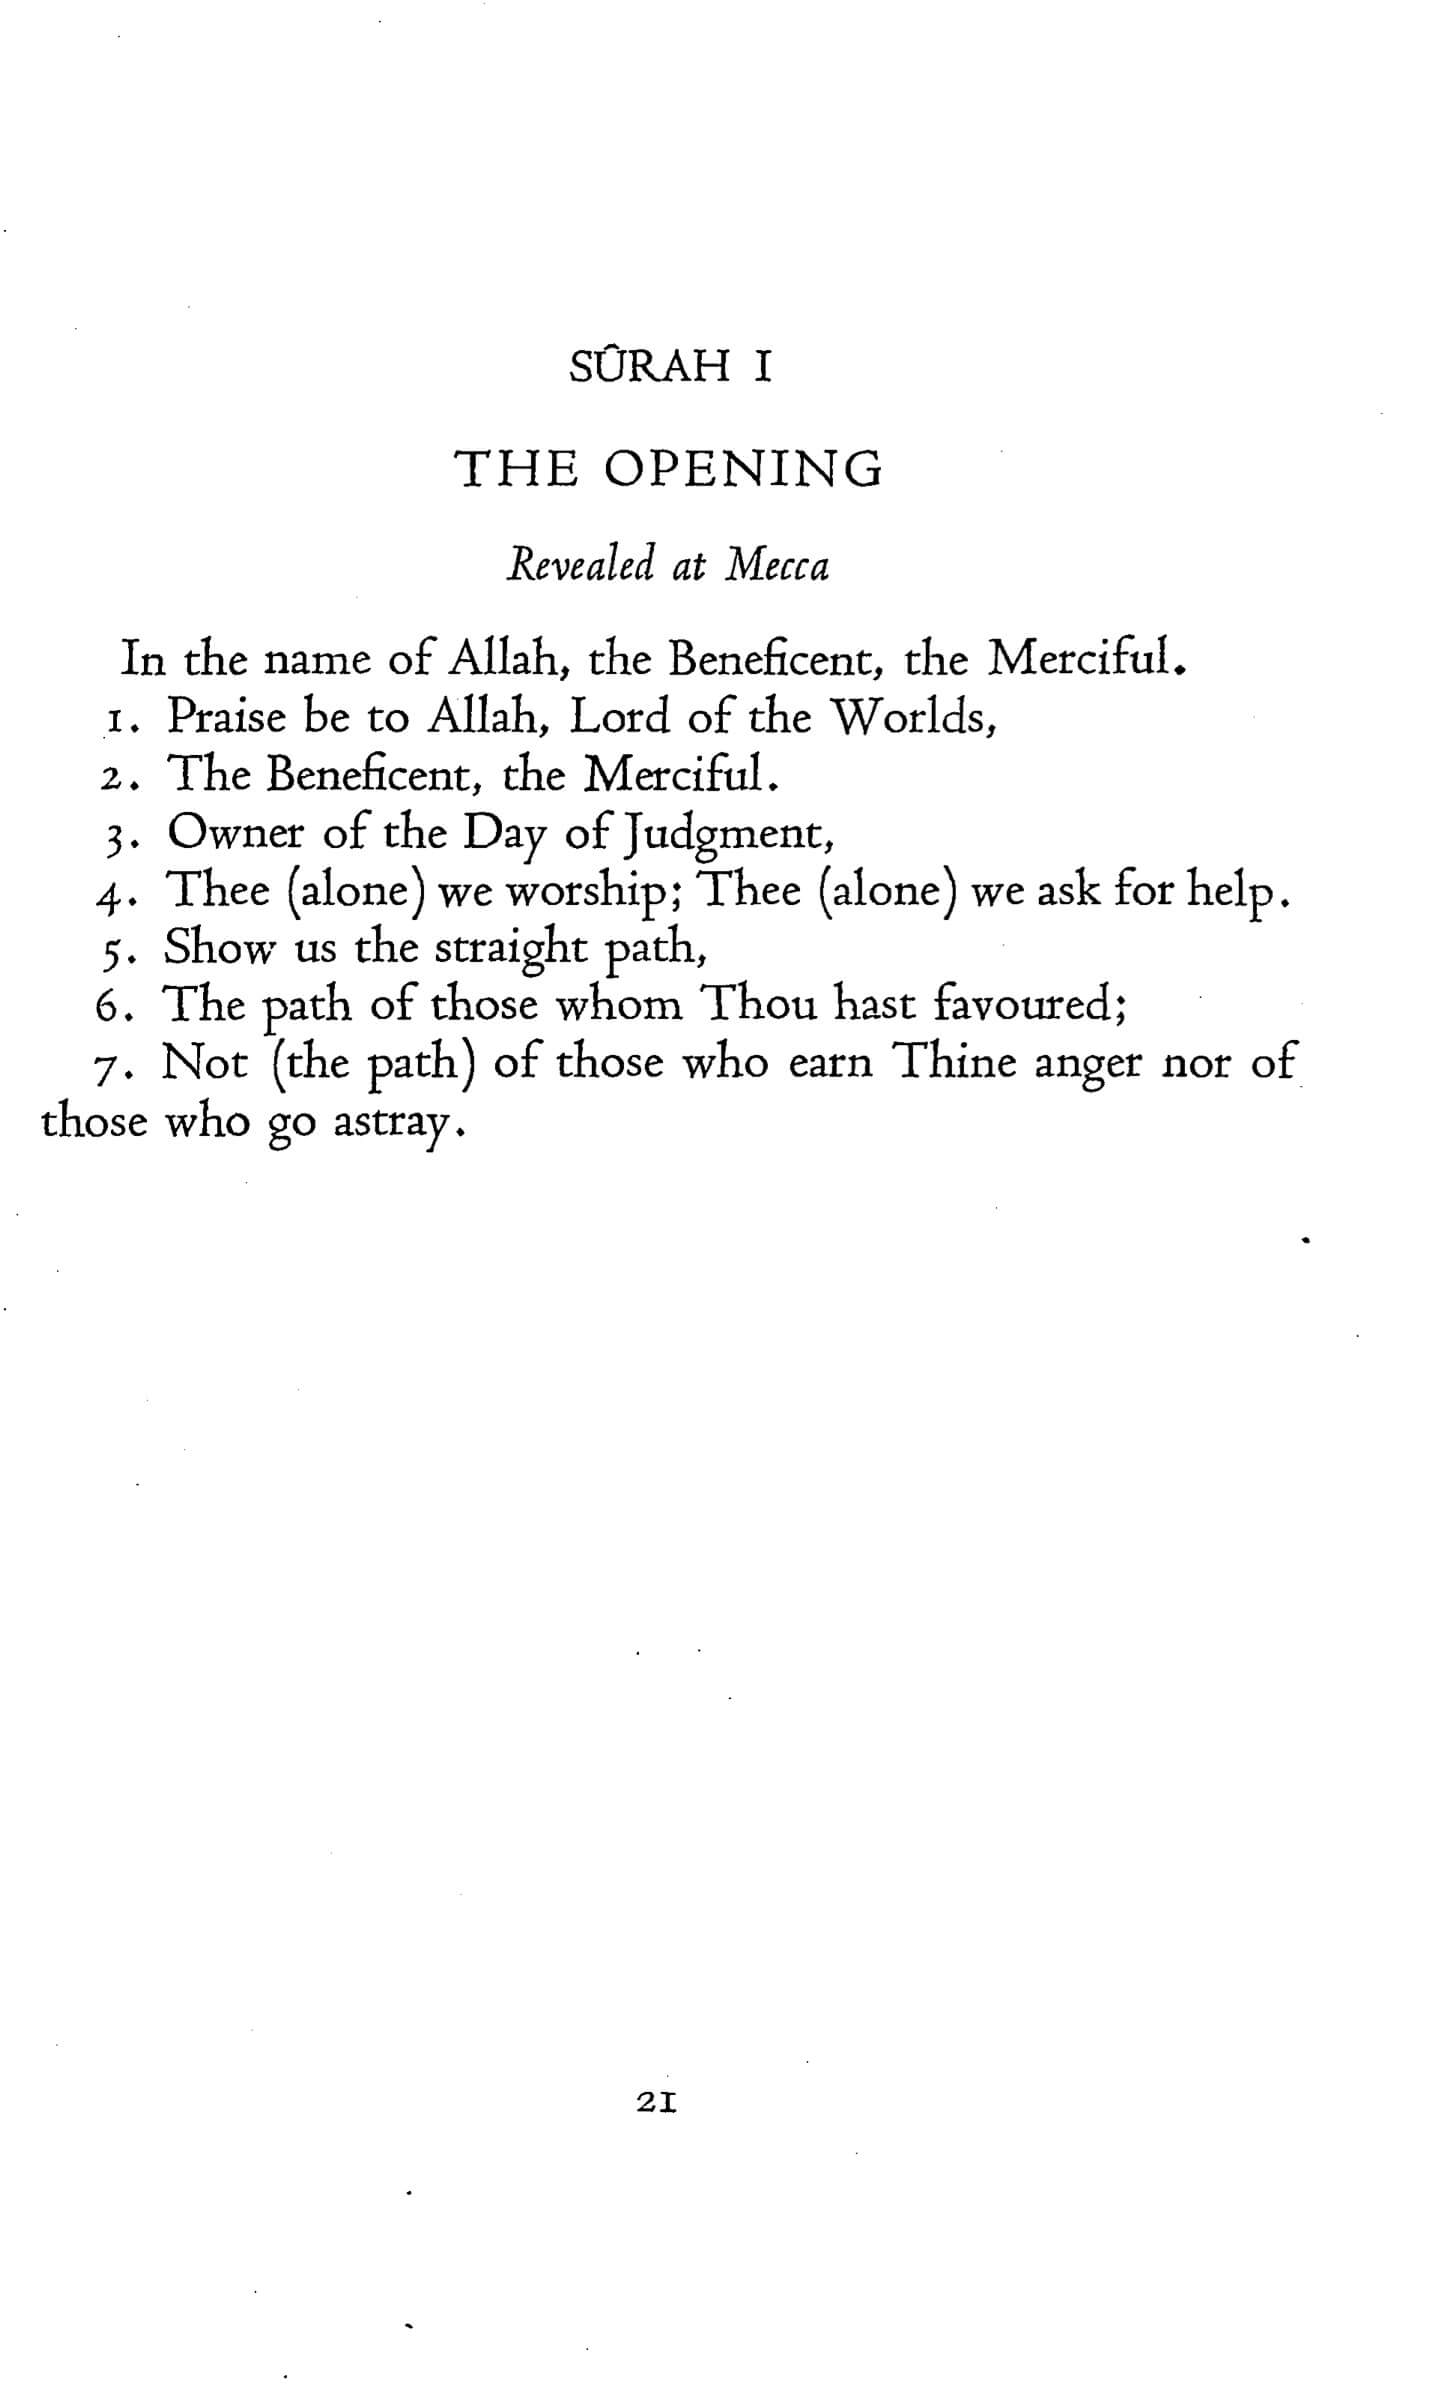 marmaduke pickthall quran translation (1930), page 27   quran explorer, download and read now (pdf, html, ebook)